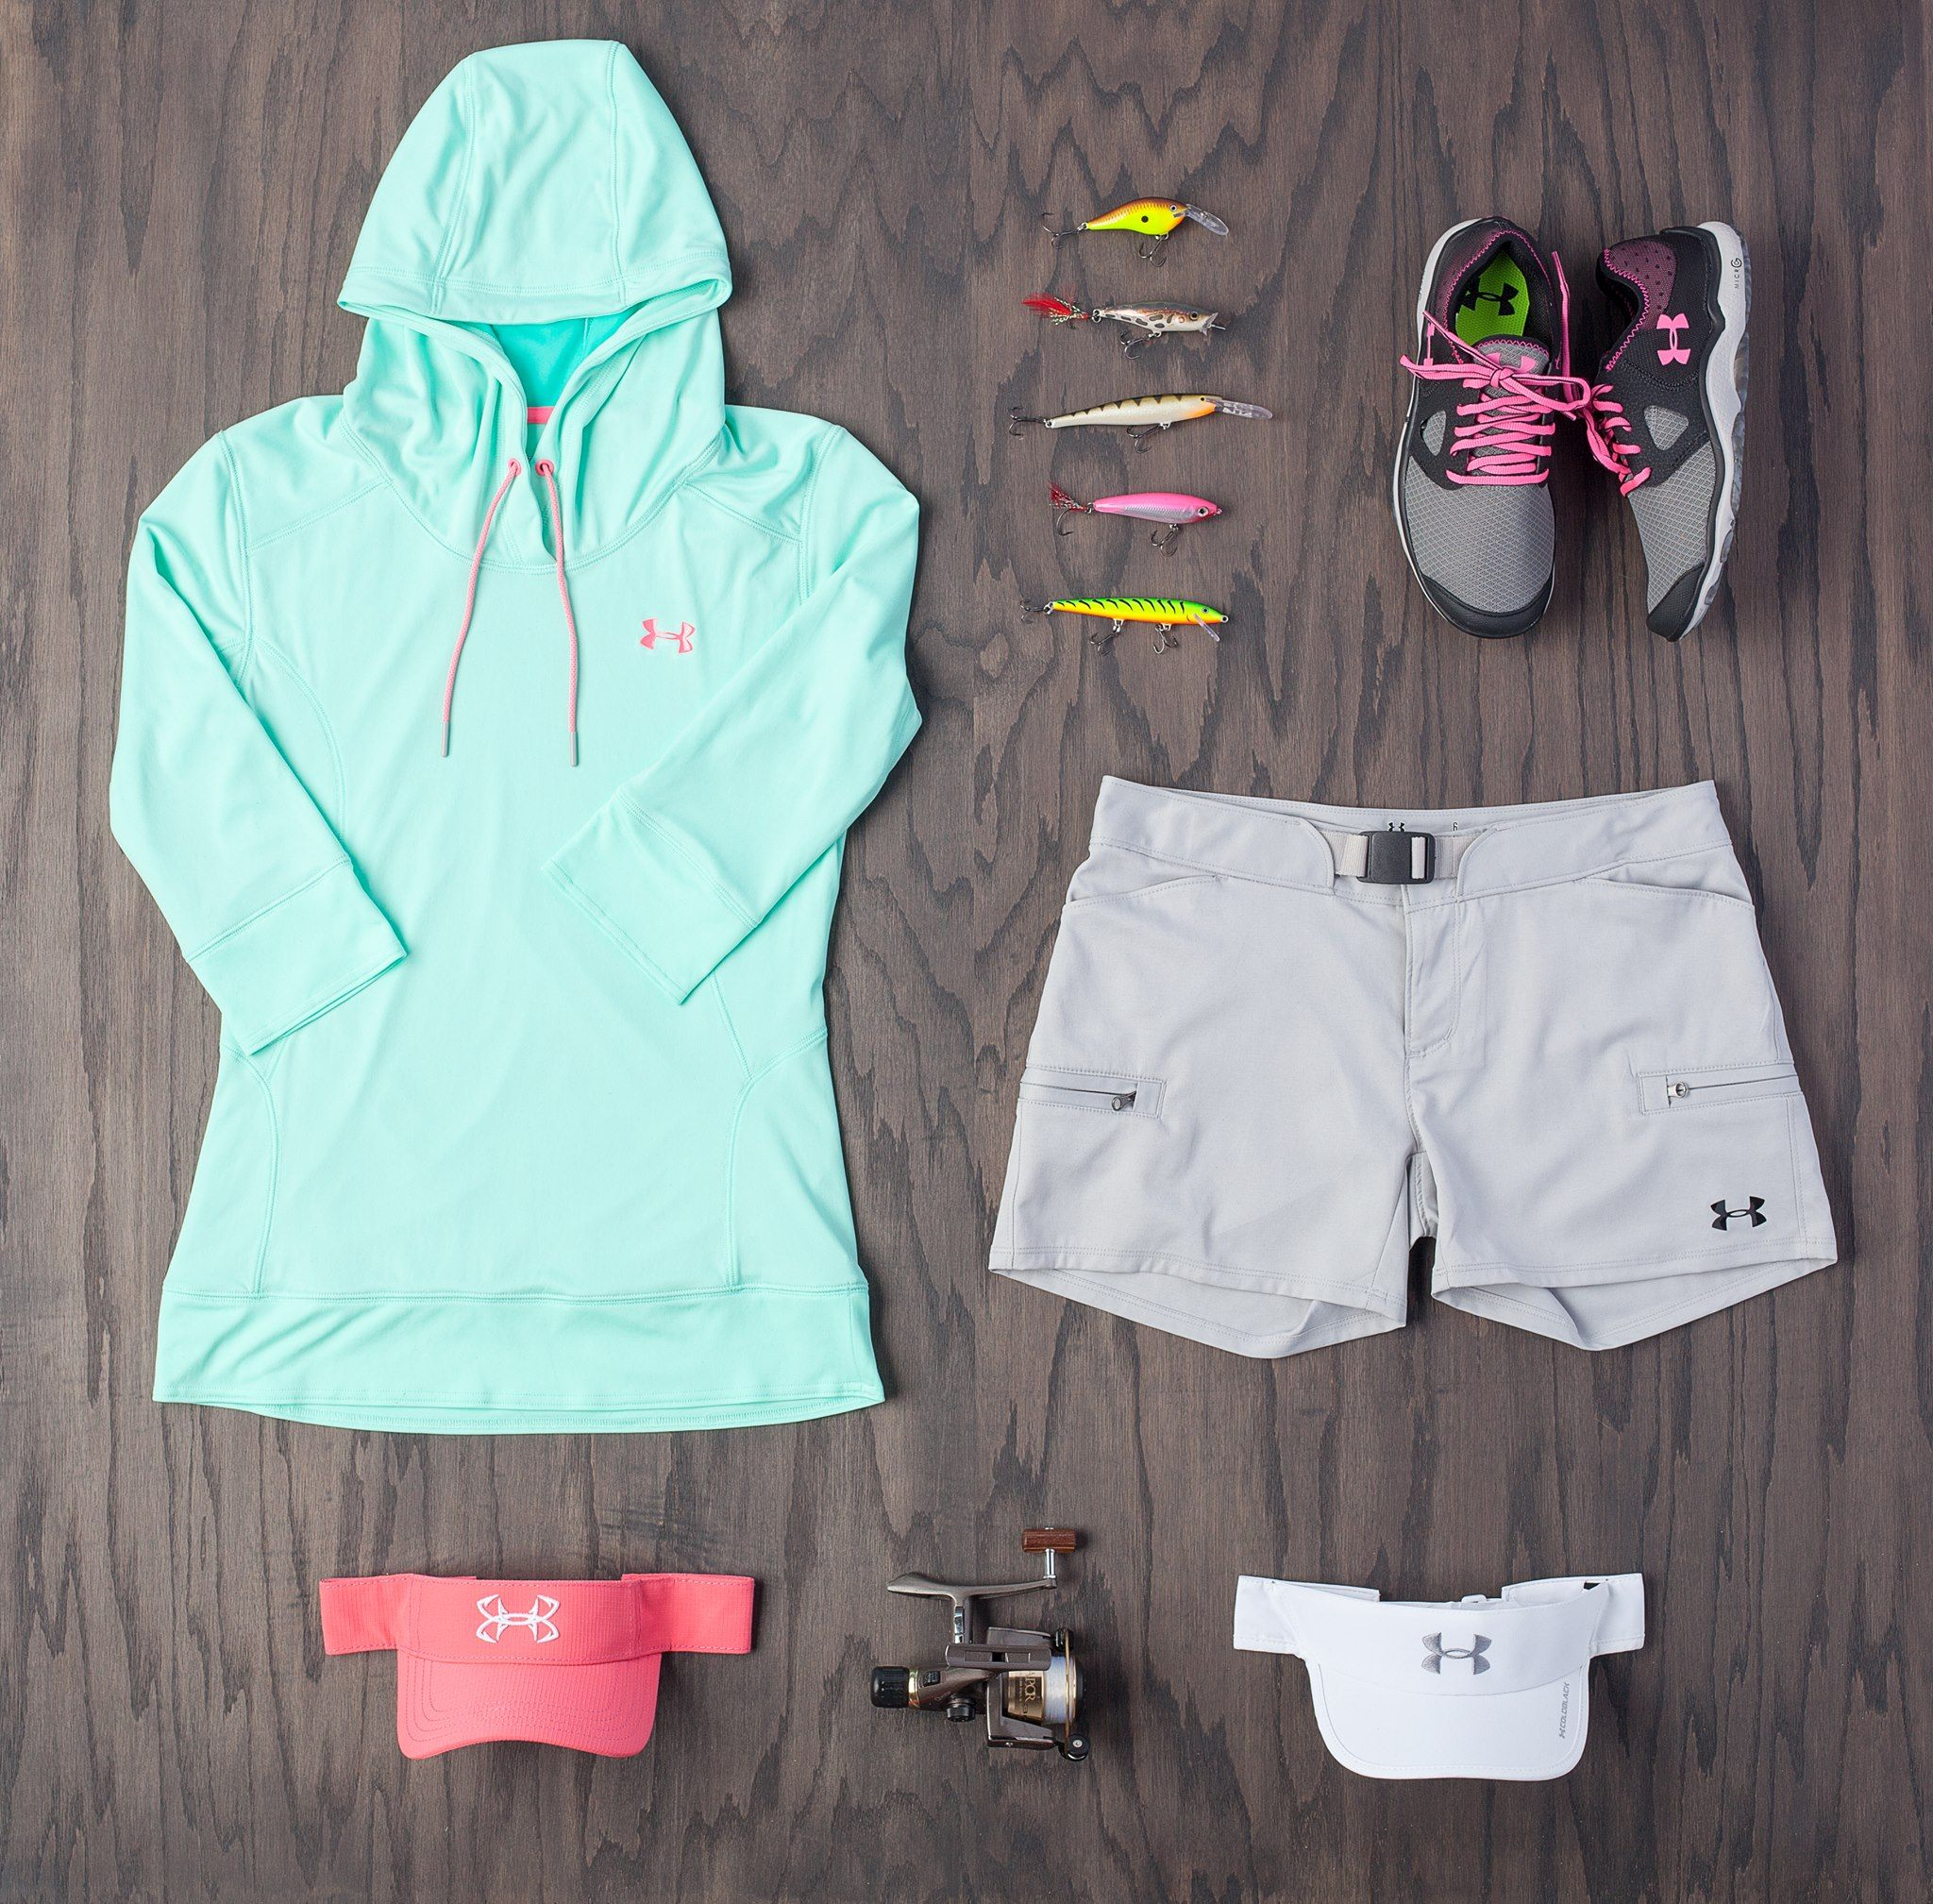 03b6e9ec2d Check out the Under Armour Women's fishing line of apparel & gear ...